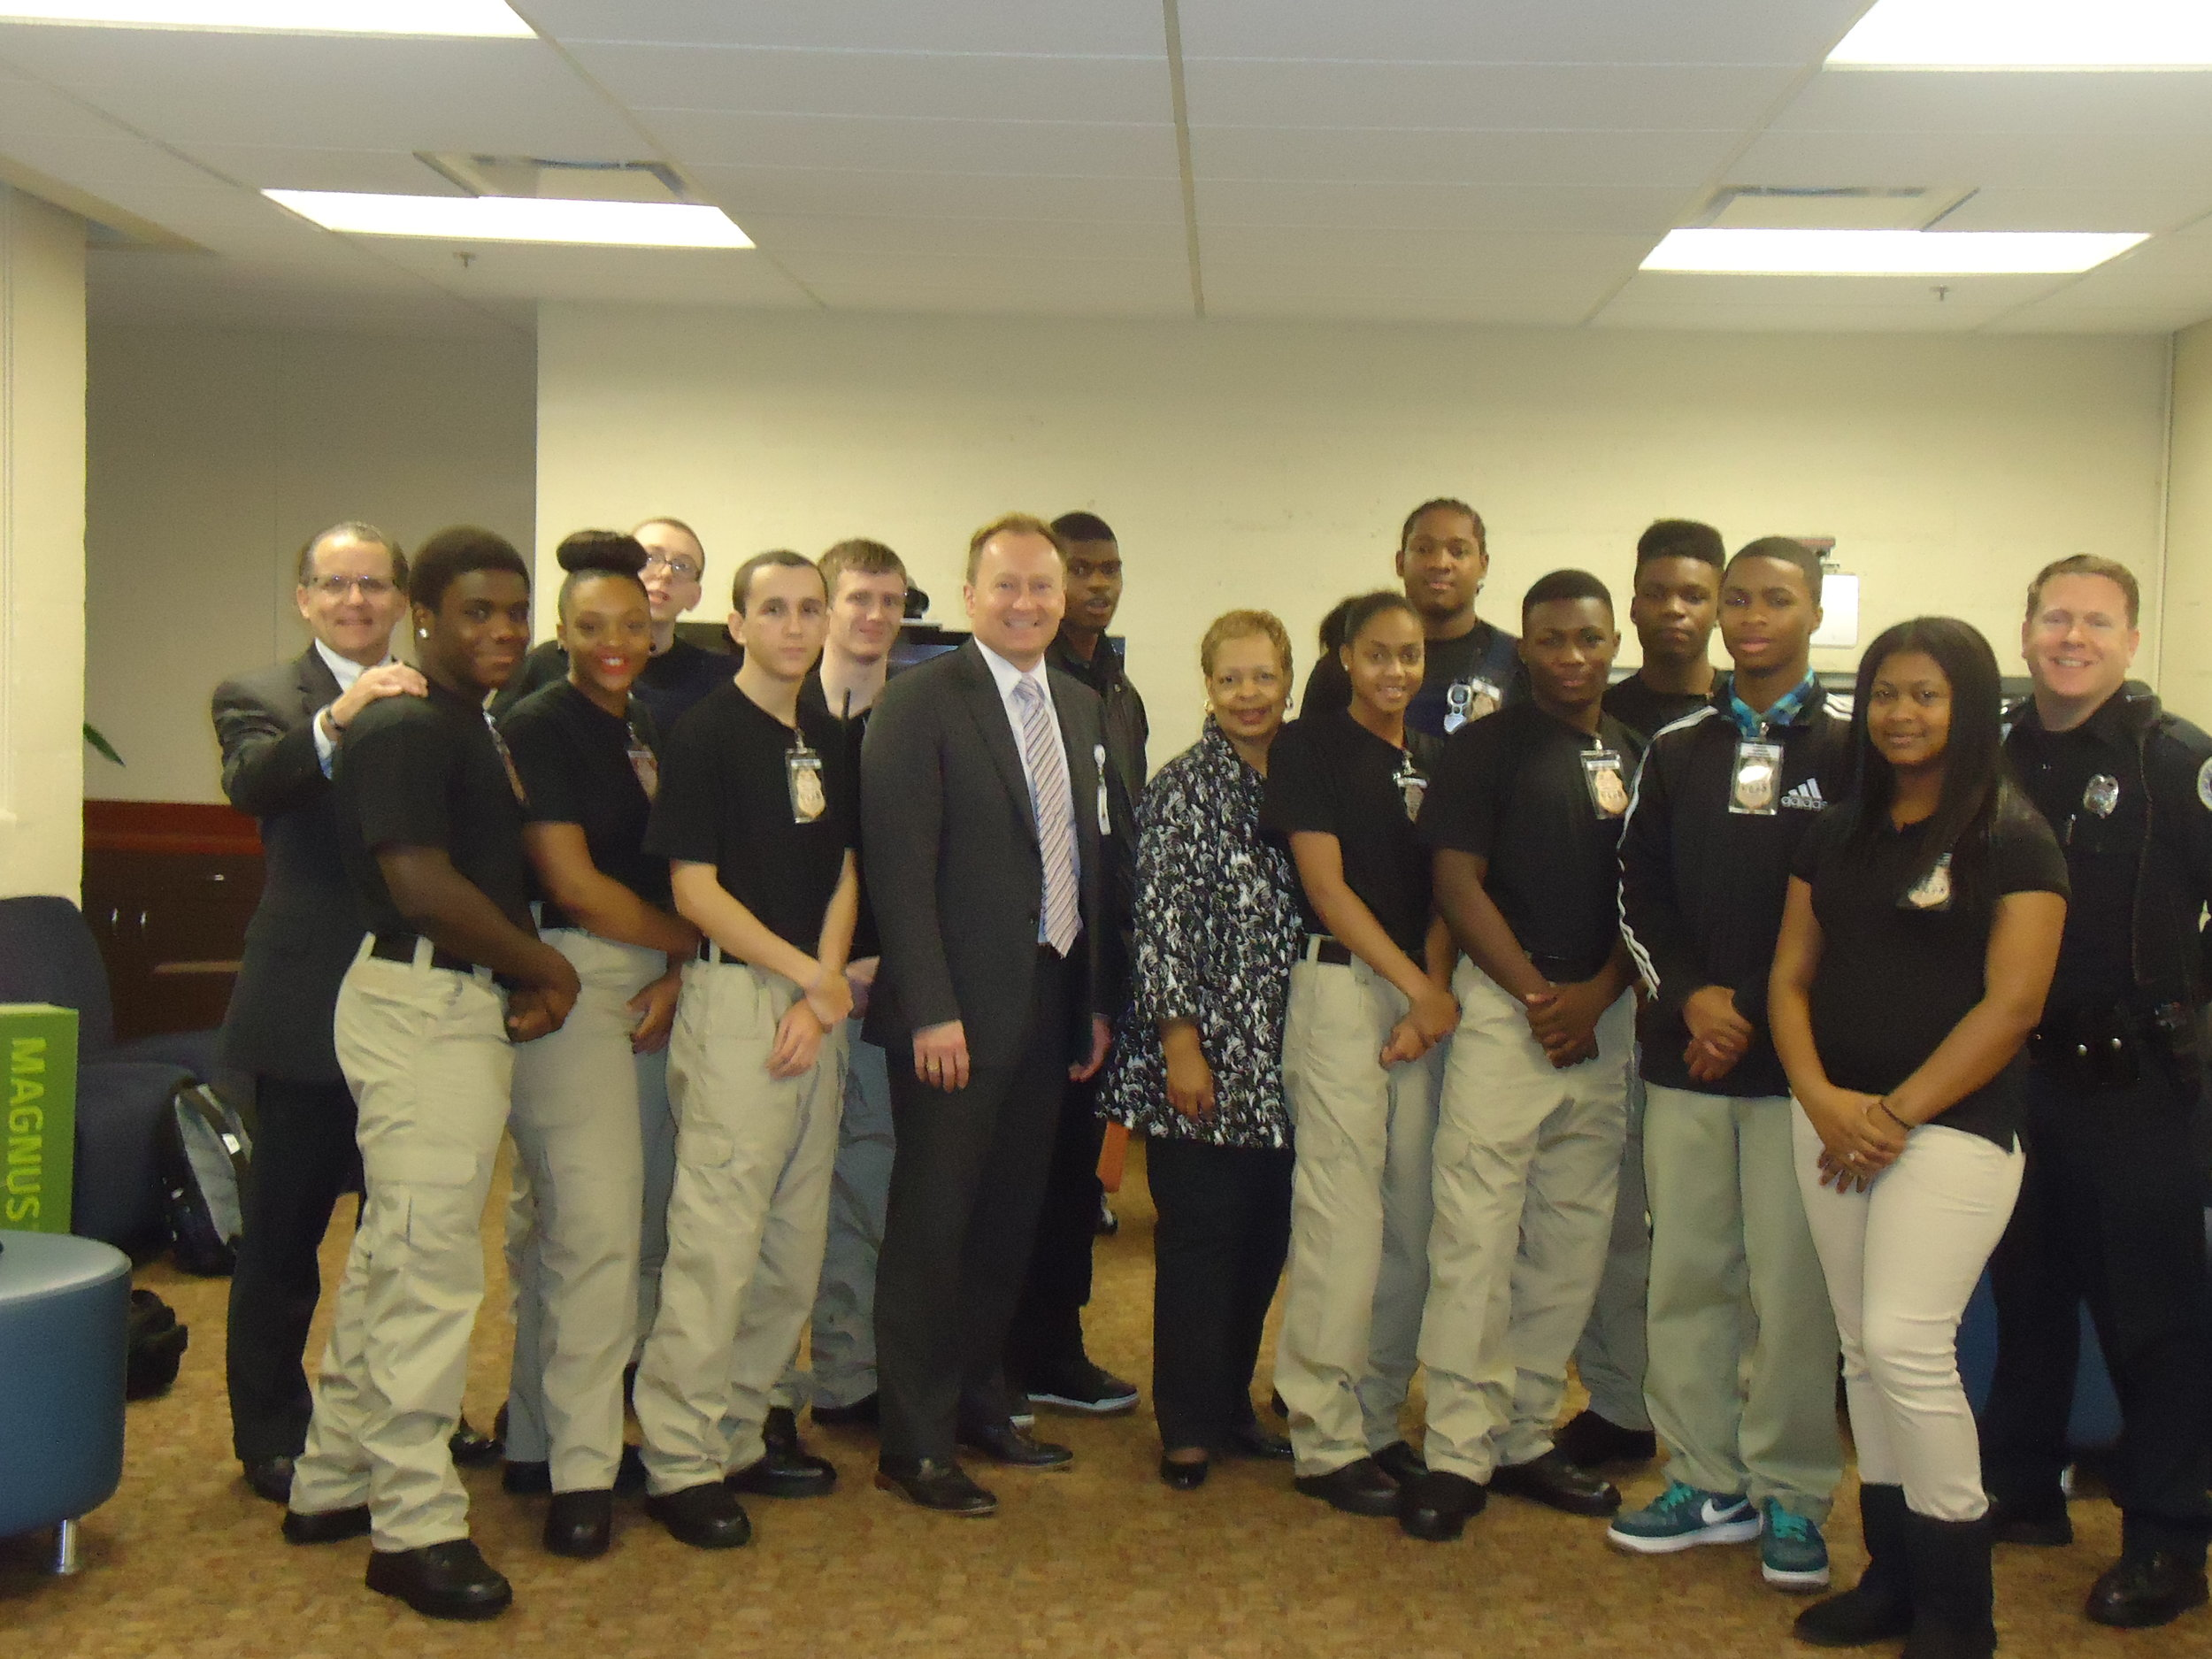 Stratford criminal justice corps students presented an executive briefing to MNPS High School Principals regarding the global war on terror, with a specific emphasis on the Boston Marathon bombing incident, investigation, and ongoing judicial process.